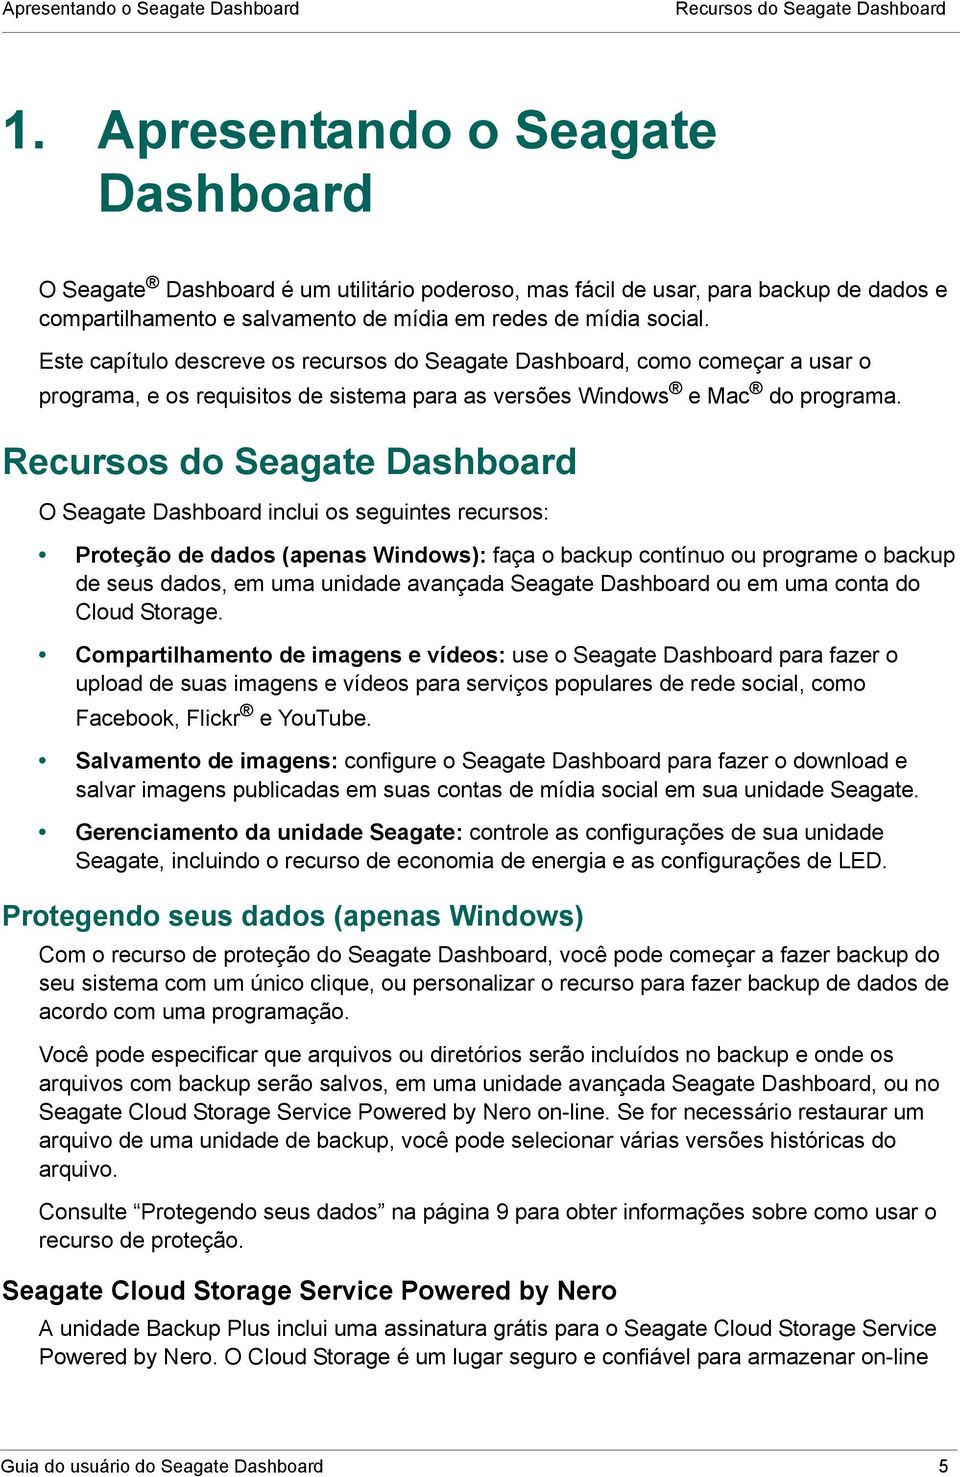 Este capítulo descreve os recursos do Seagate Dashboard, como começar a usar o programa, e os requisitos de sistema para as versões Windows e Mac do programa.